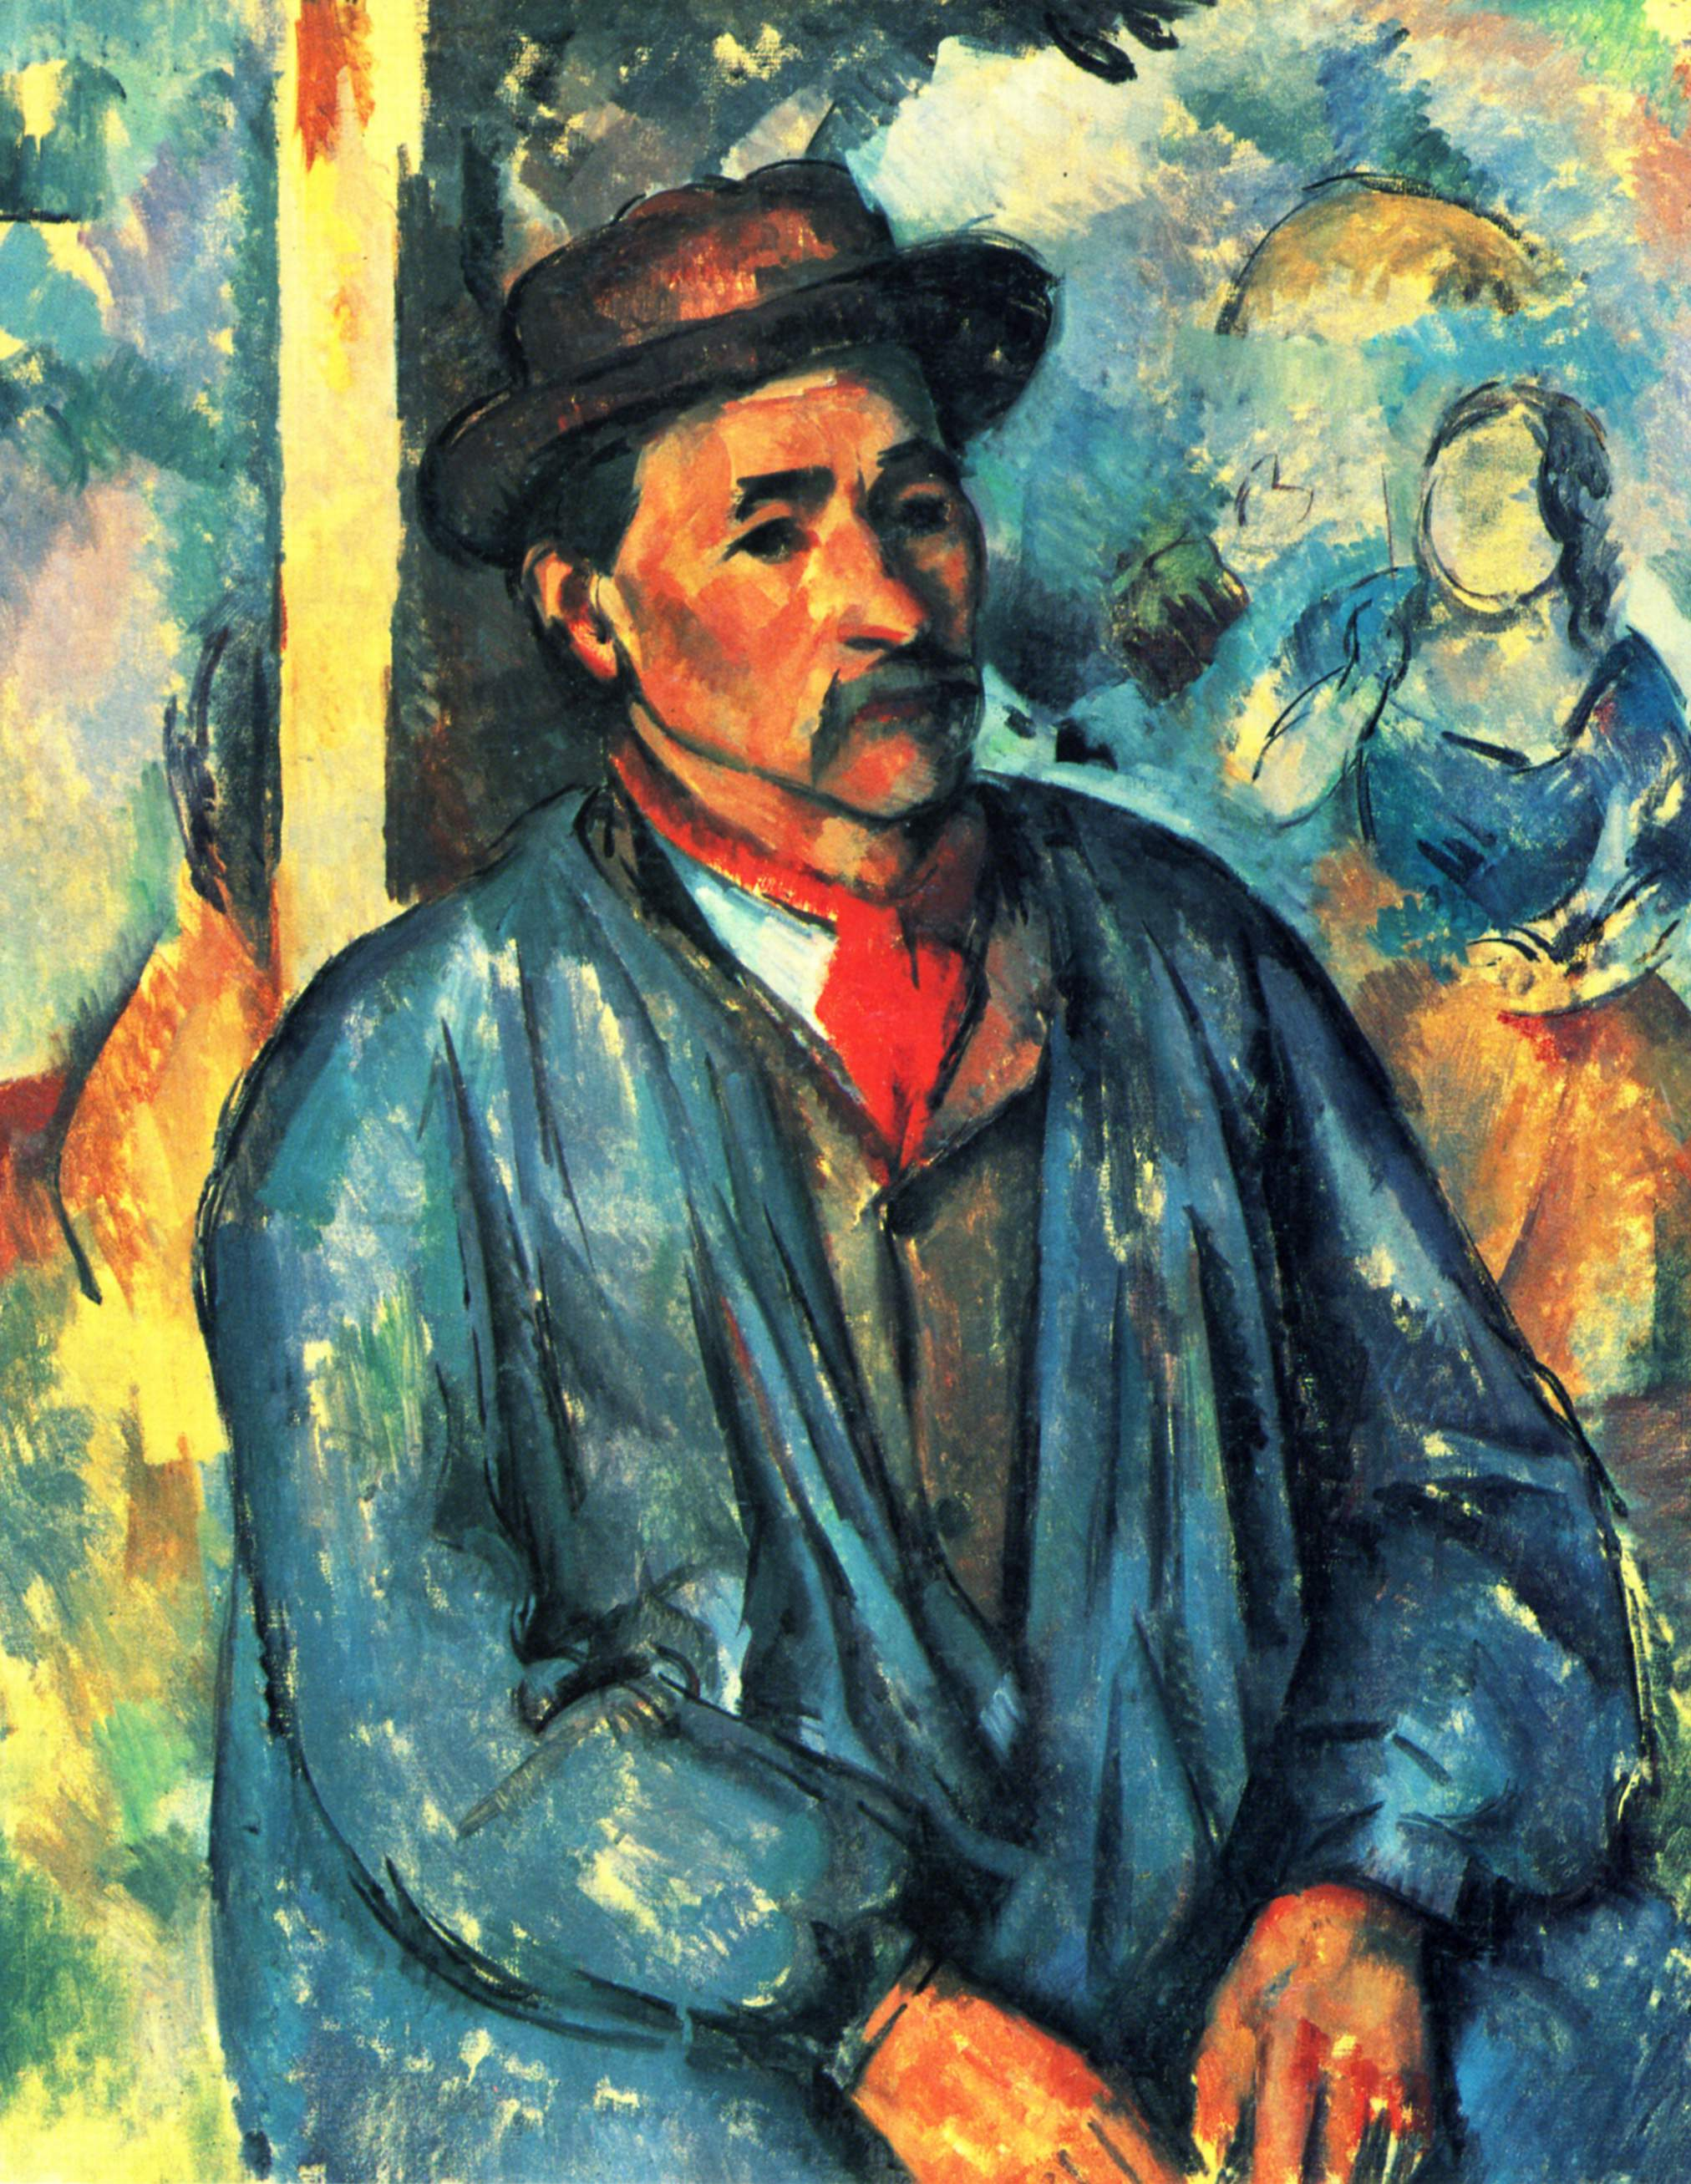 https://uploads6.wikiart.org/images/paul-cezanne/peasant-in-a-blue-smock.jpg